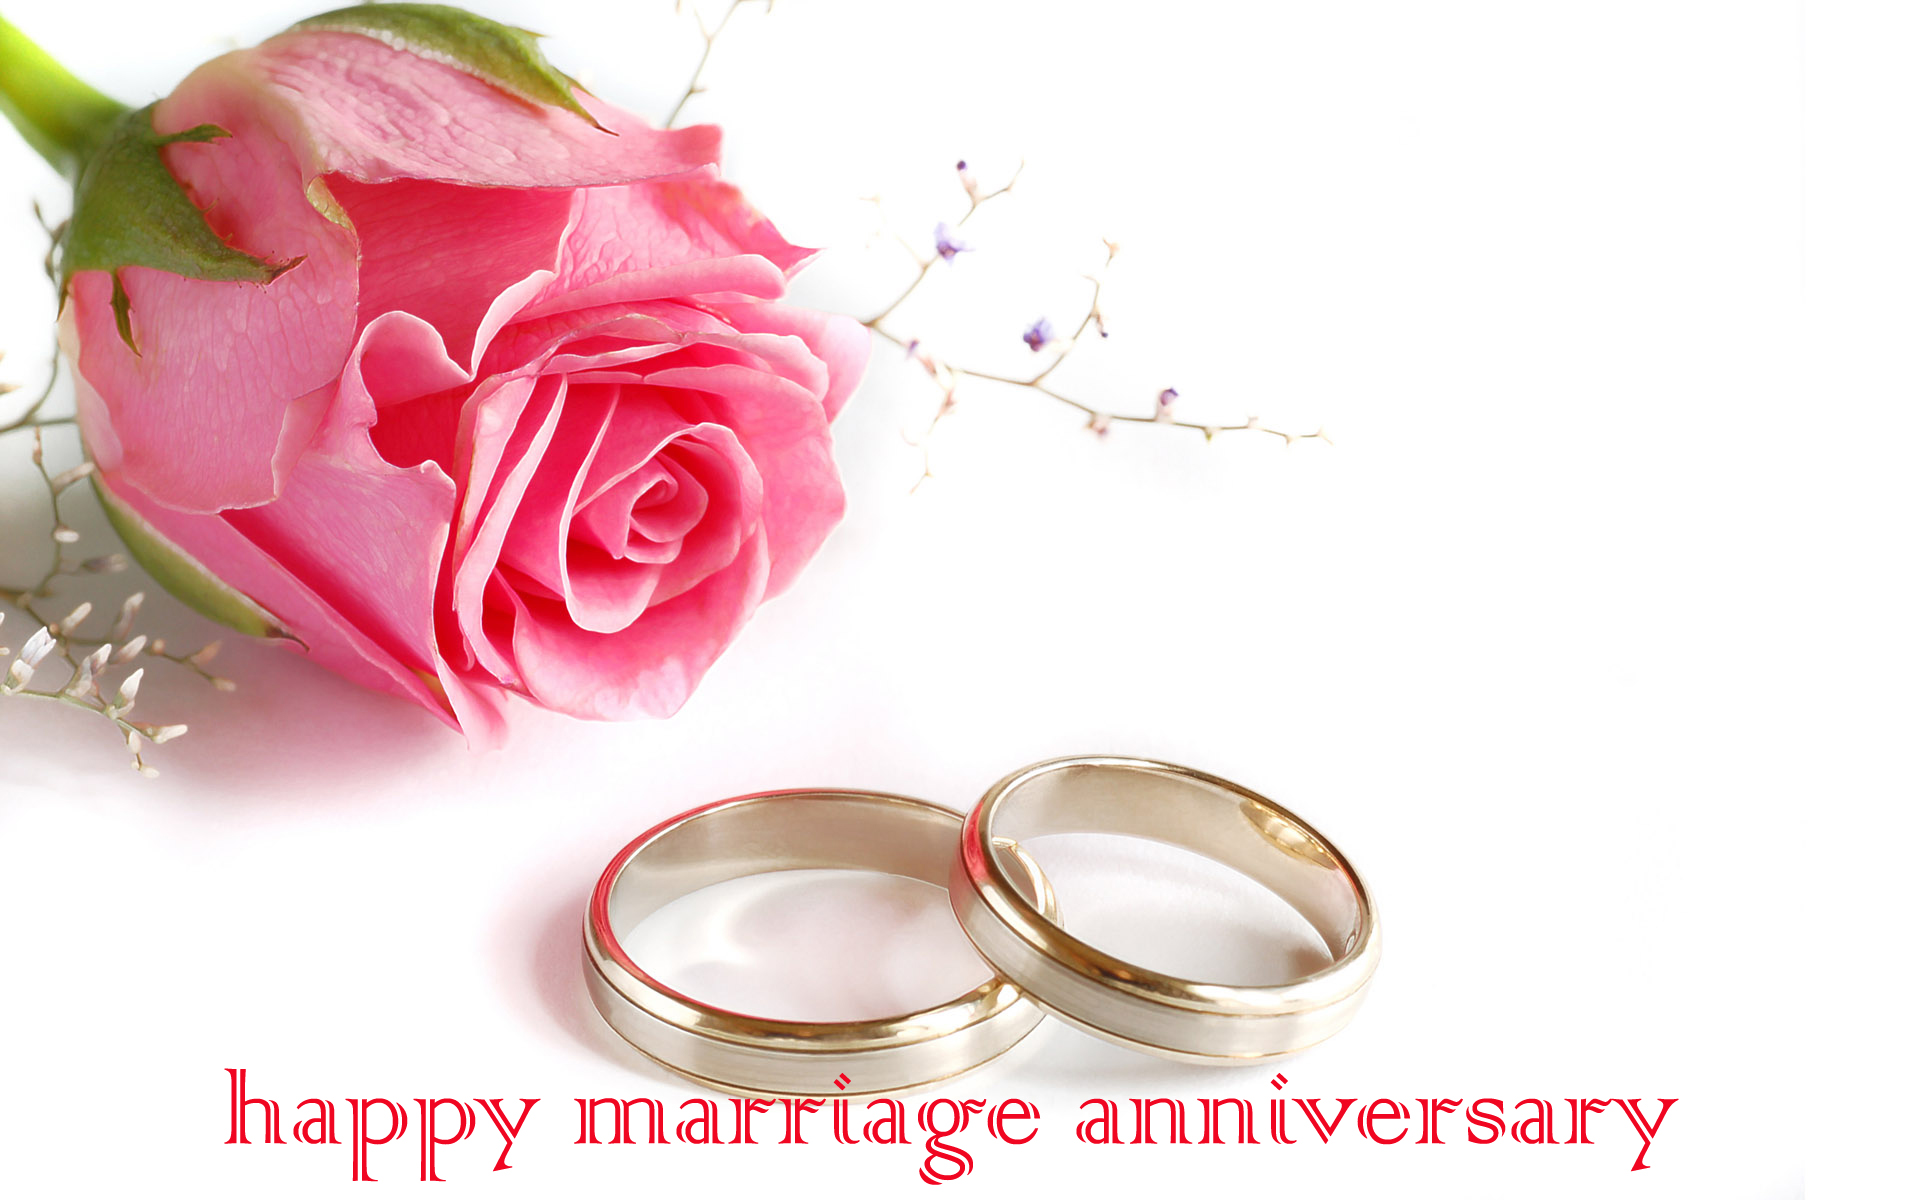 Best Happy Wedding Anniversary Wishes Images Cards Greetings Photos For Husband Wife